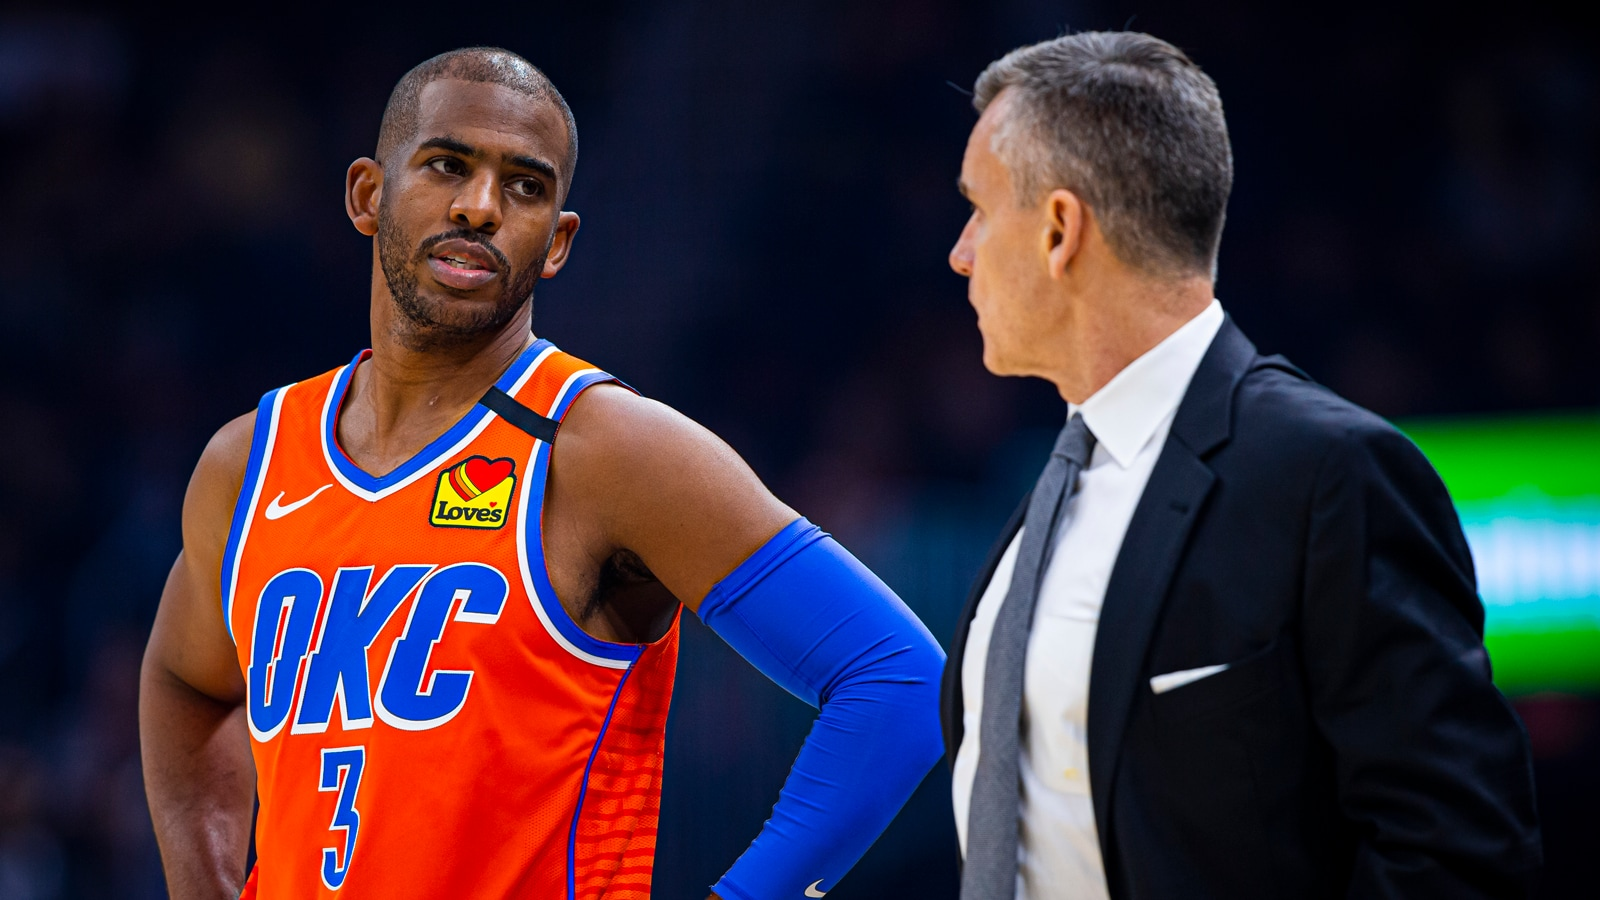 Chris Paul and Billy Donovan